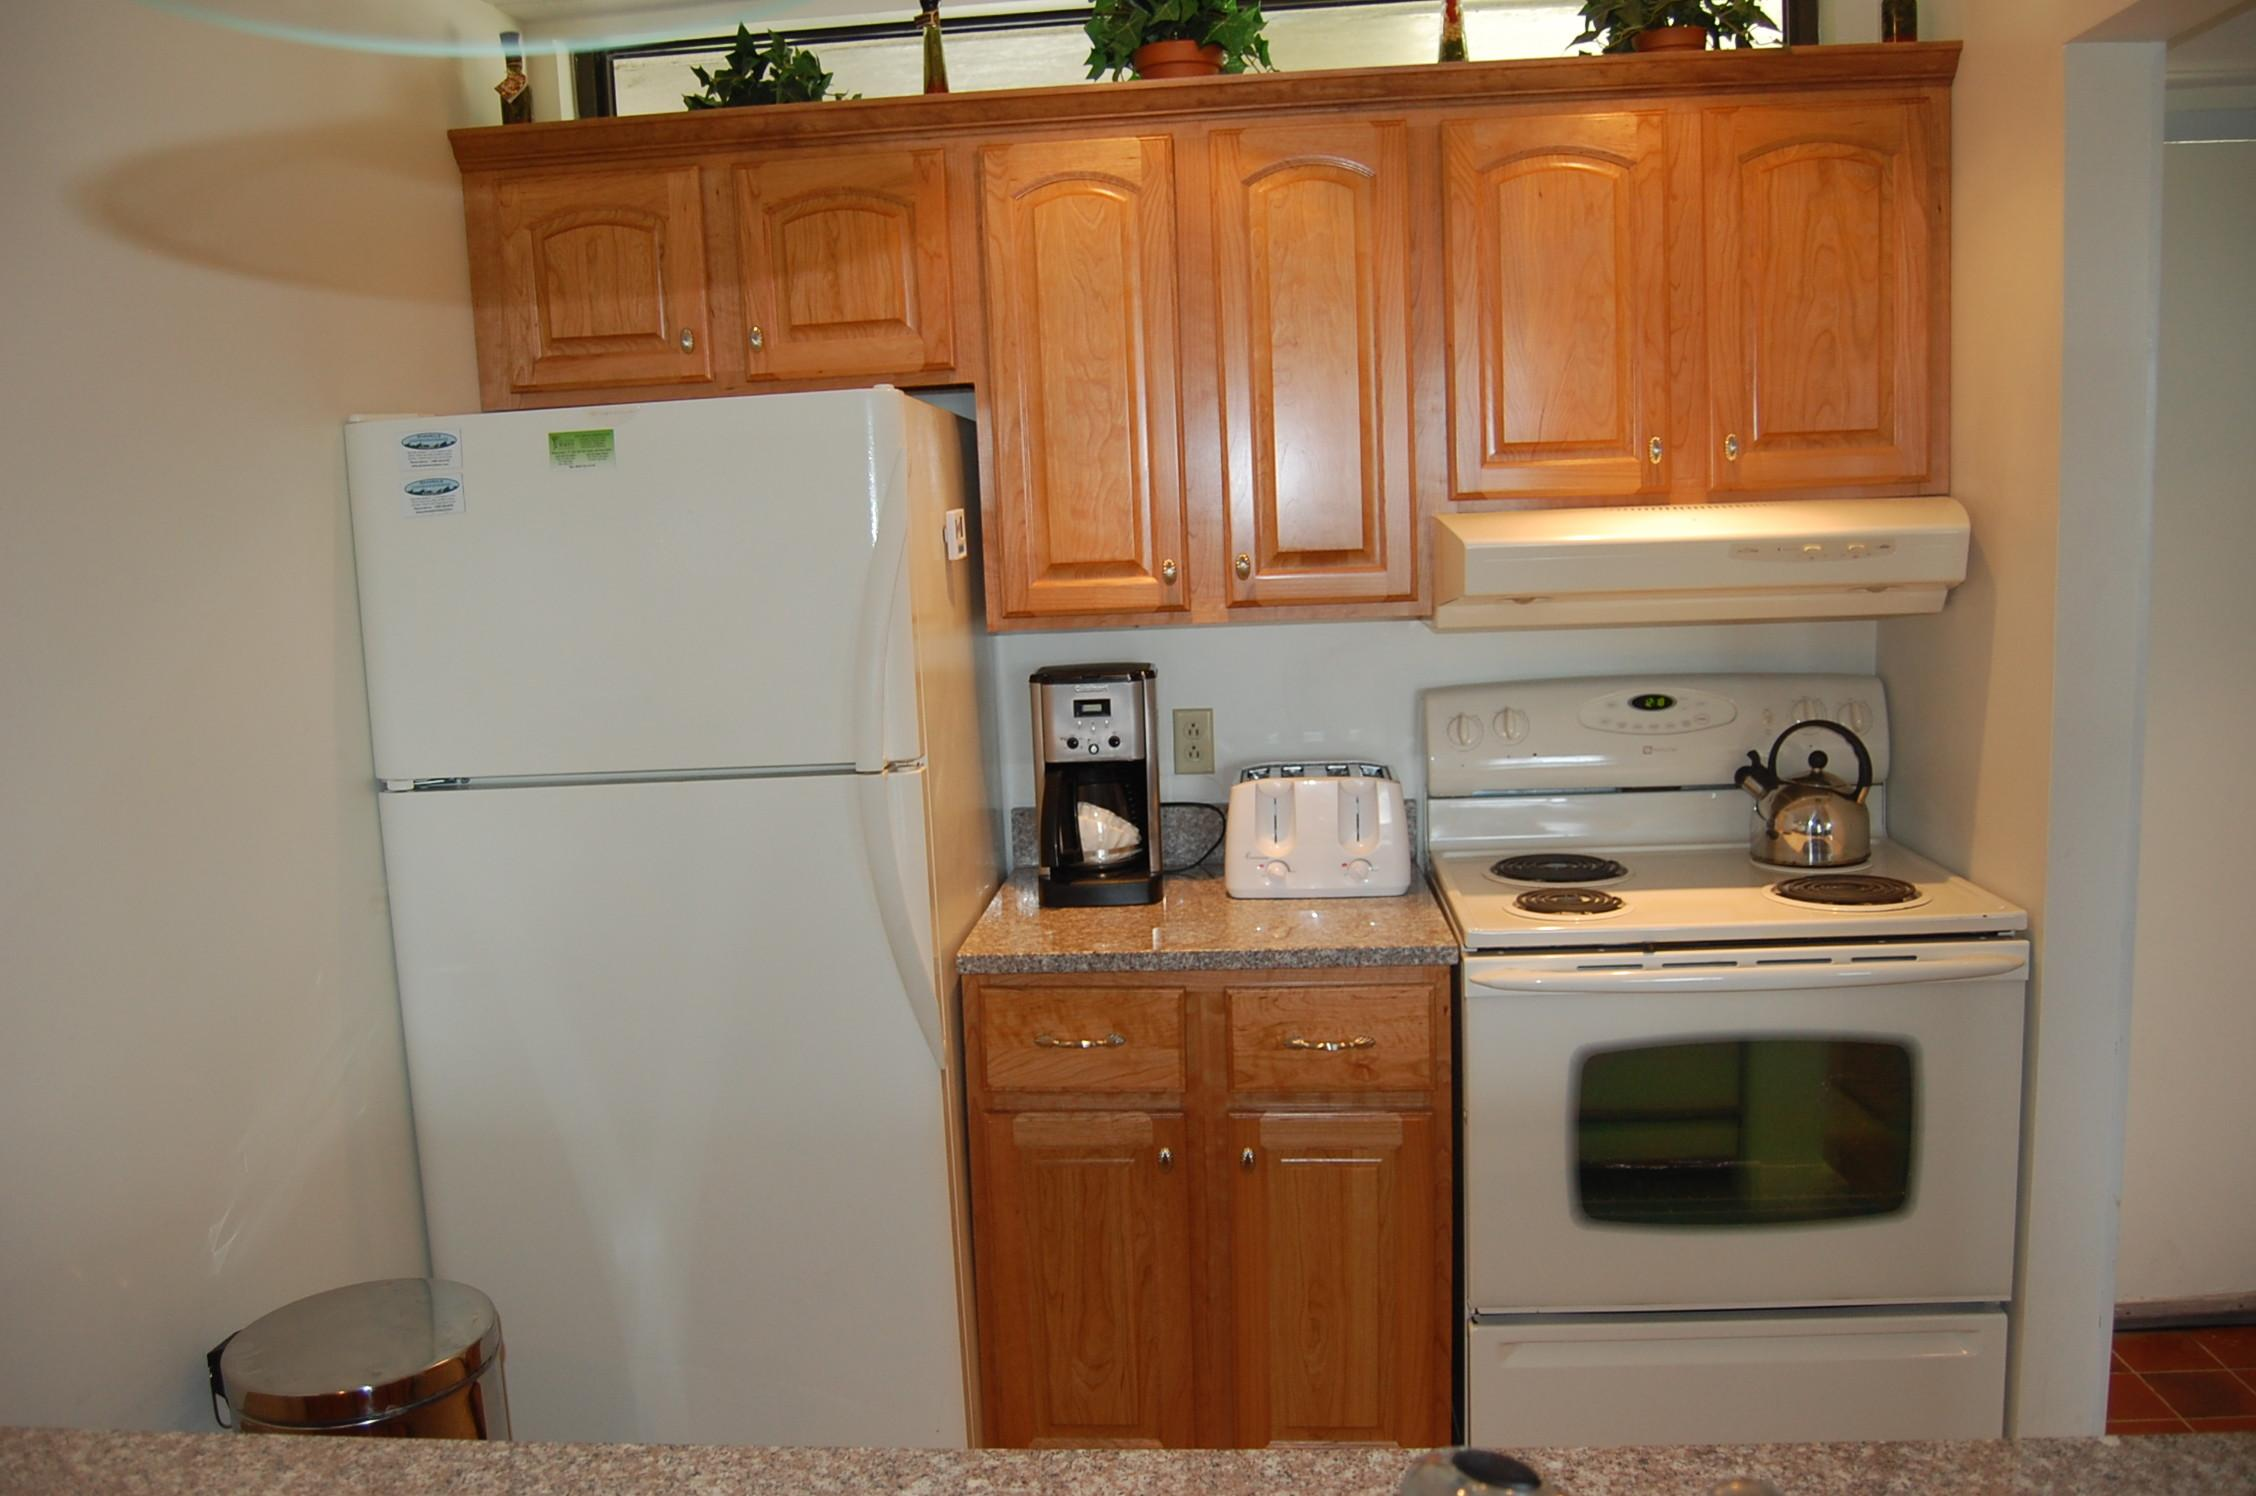 Kitchen Cabinets Refacing Randy Gregory Design